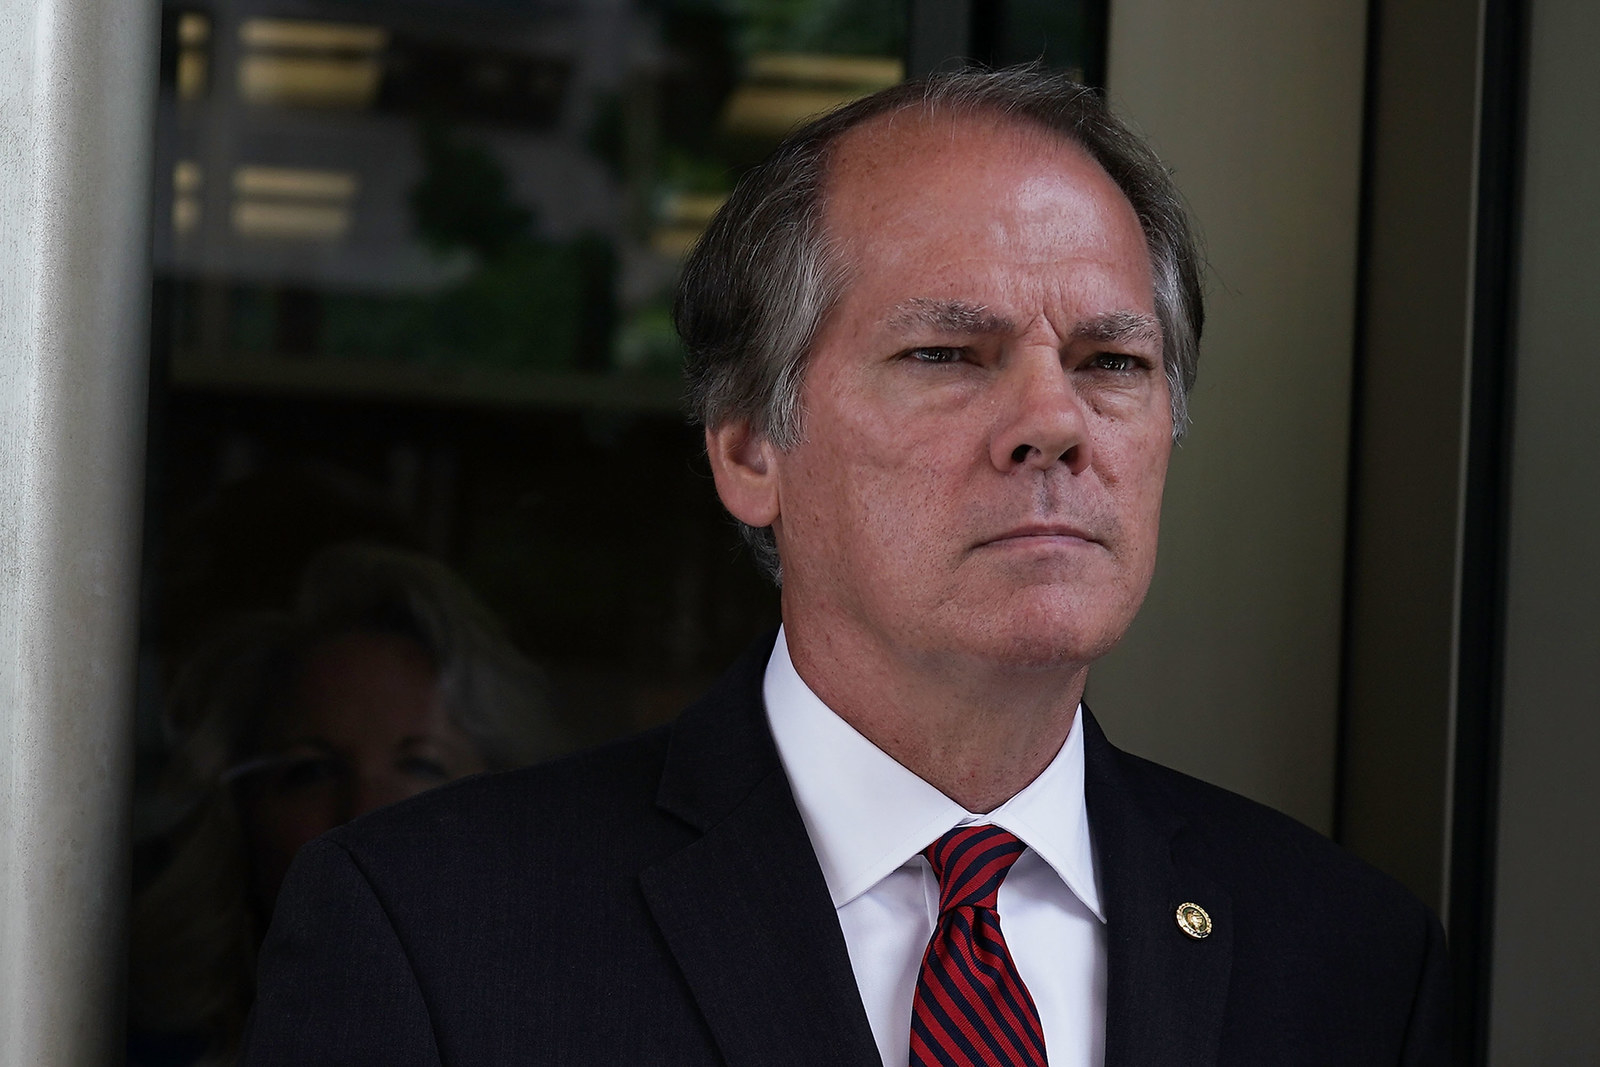 A Former Senate Intelligence Staffer Has Pleaded Guilty To Lying To The FBI About His Contact With Reporters